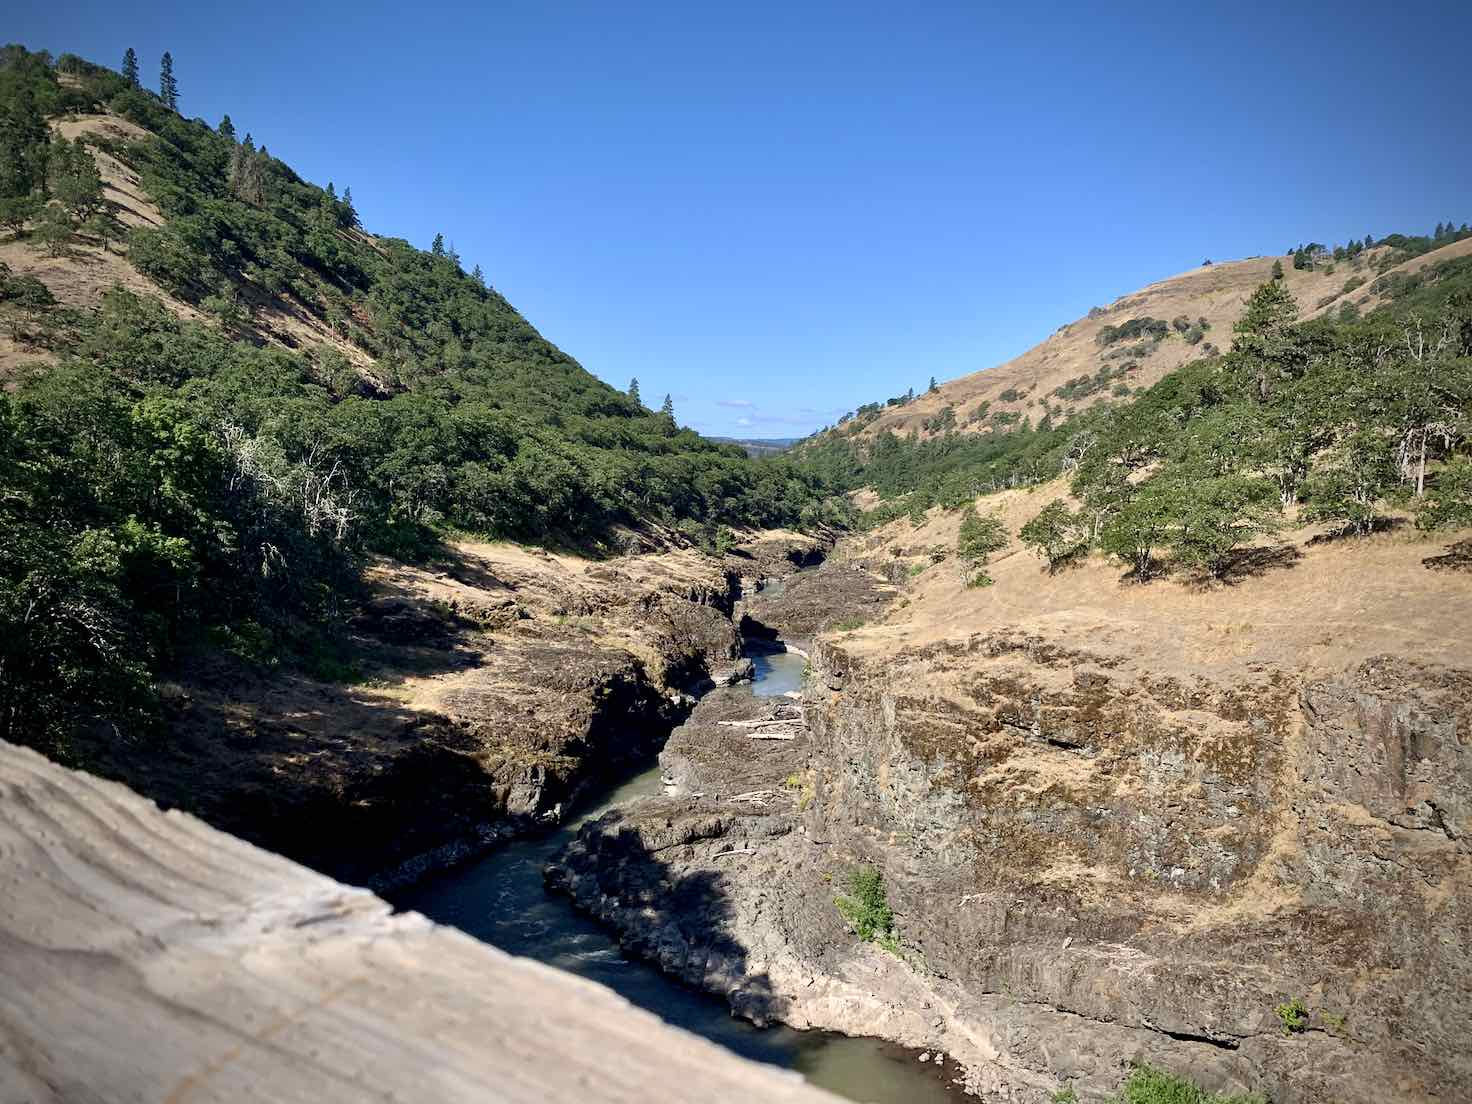 The view downriver of the Klickitat from the Fischer HIll Trestle near Lyle, WA.